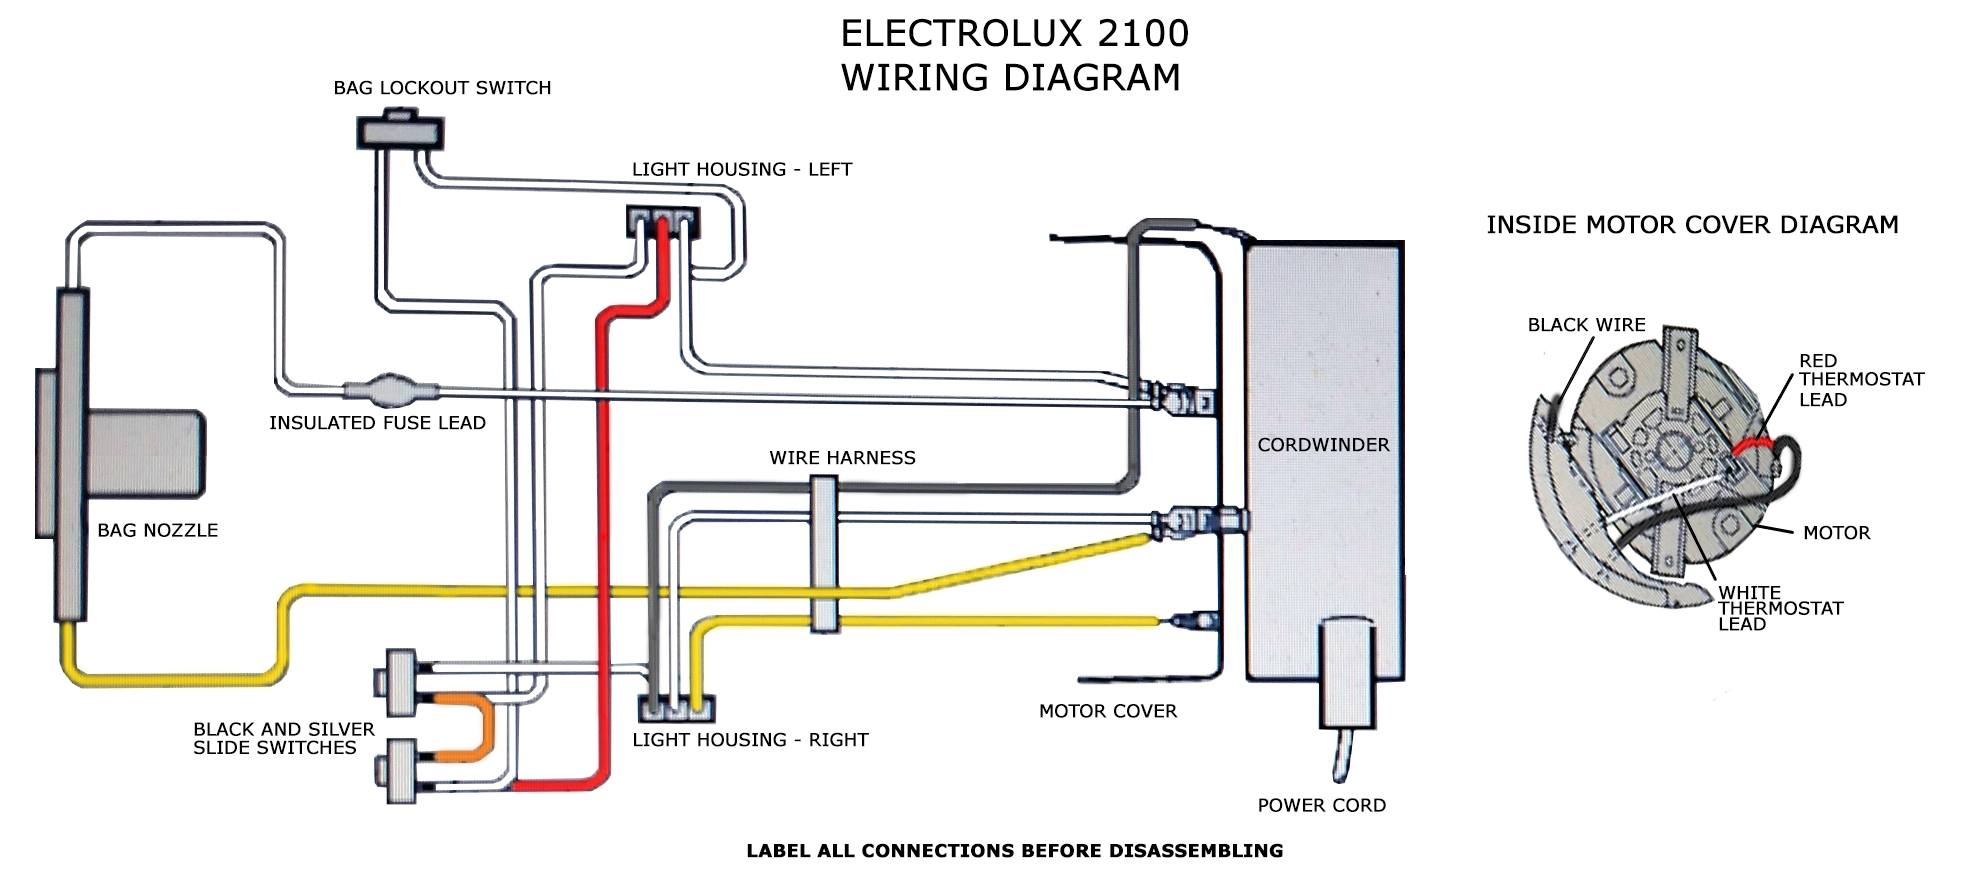 2100 wiring diagram miele vacuum wiring diagram osram wiring diagram \u2022 wiring diagram geyser wiring diagram at soozxer.org